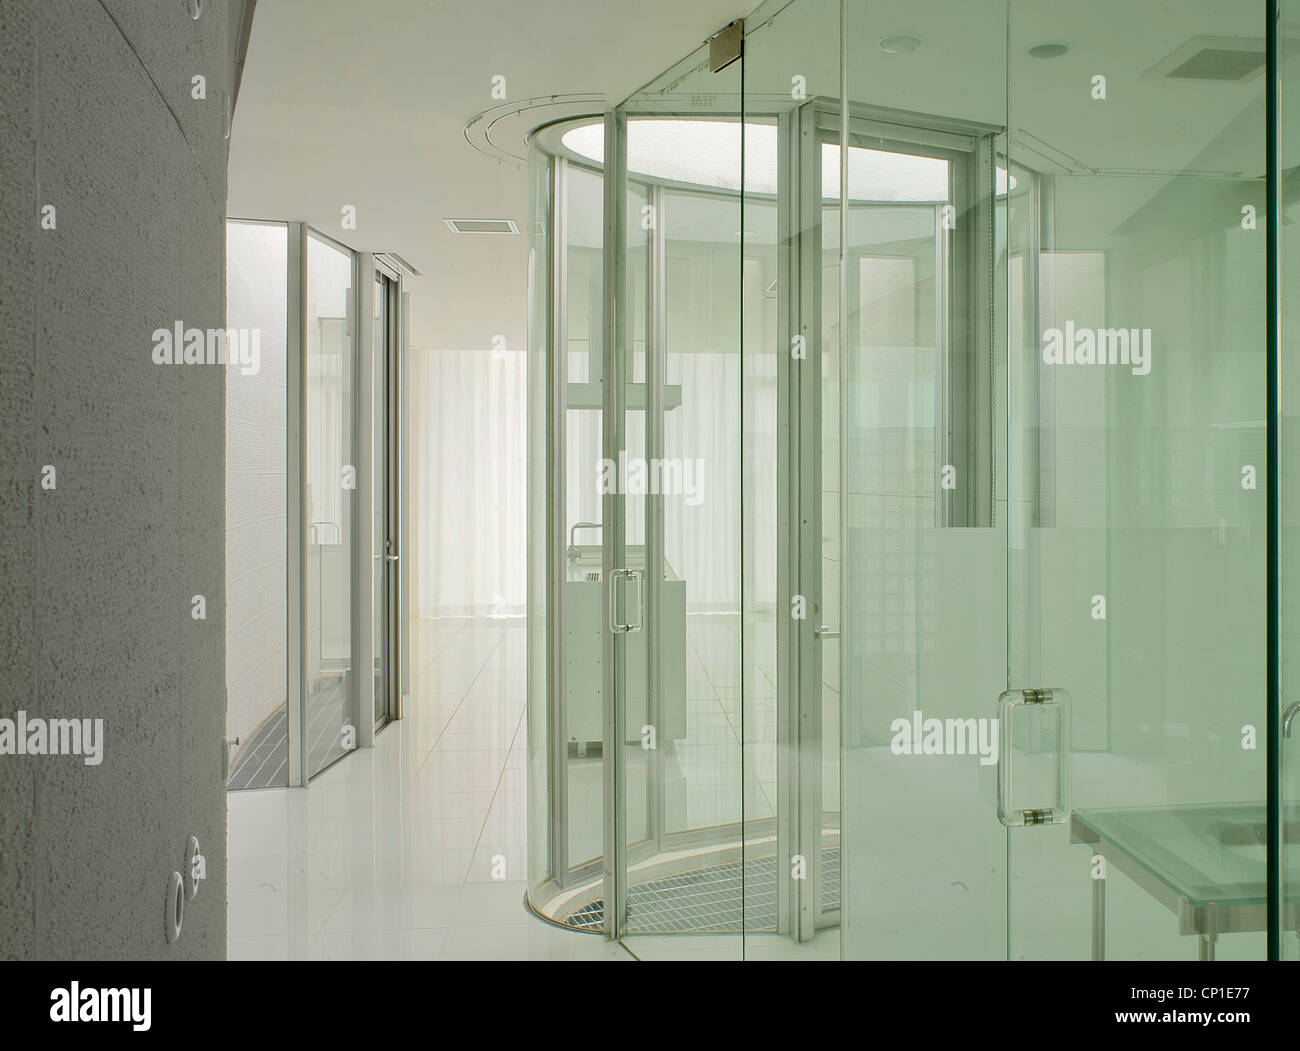 Shower Door Stock Photos & Shower Door Stock Images - Alamy